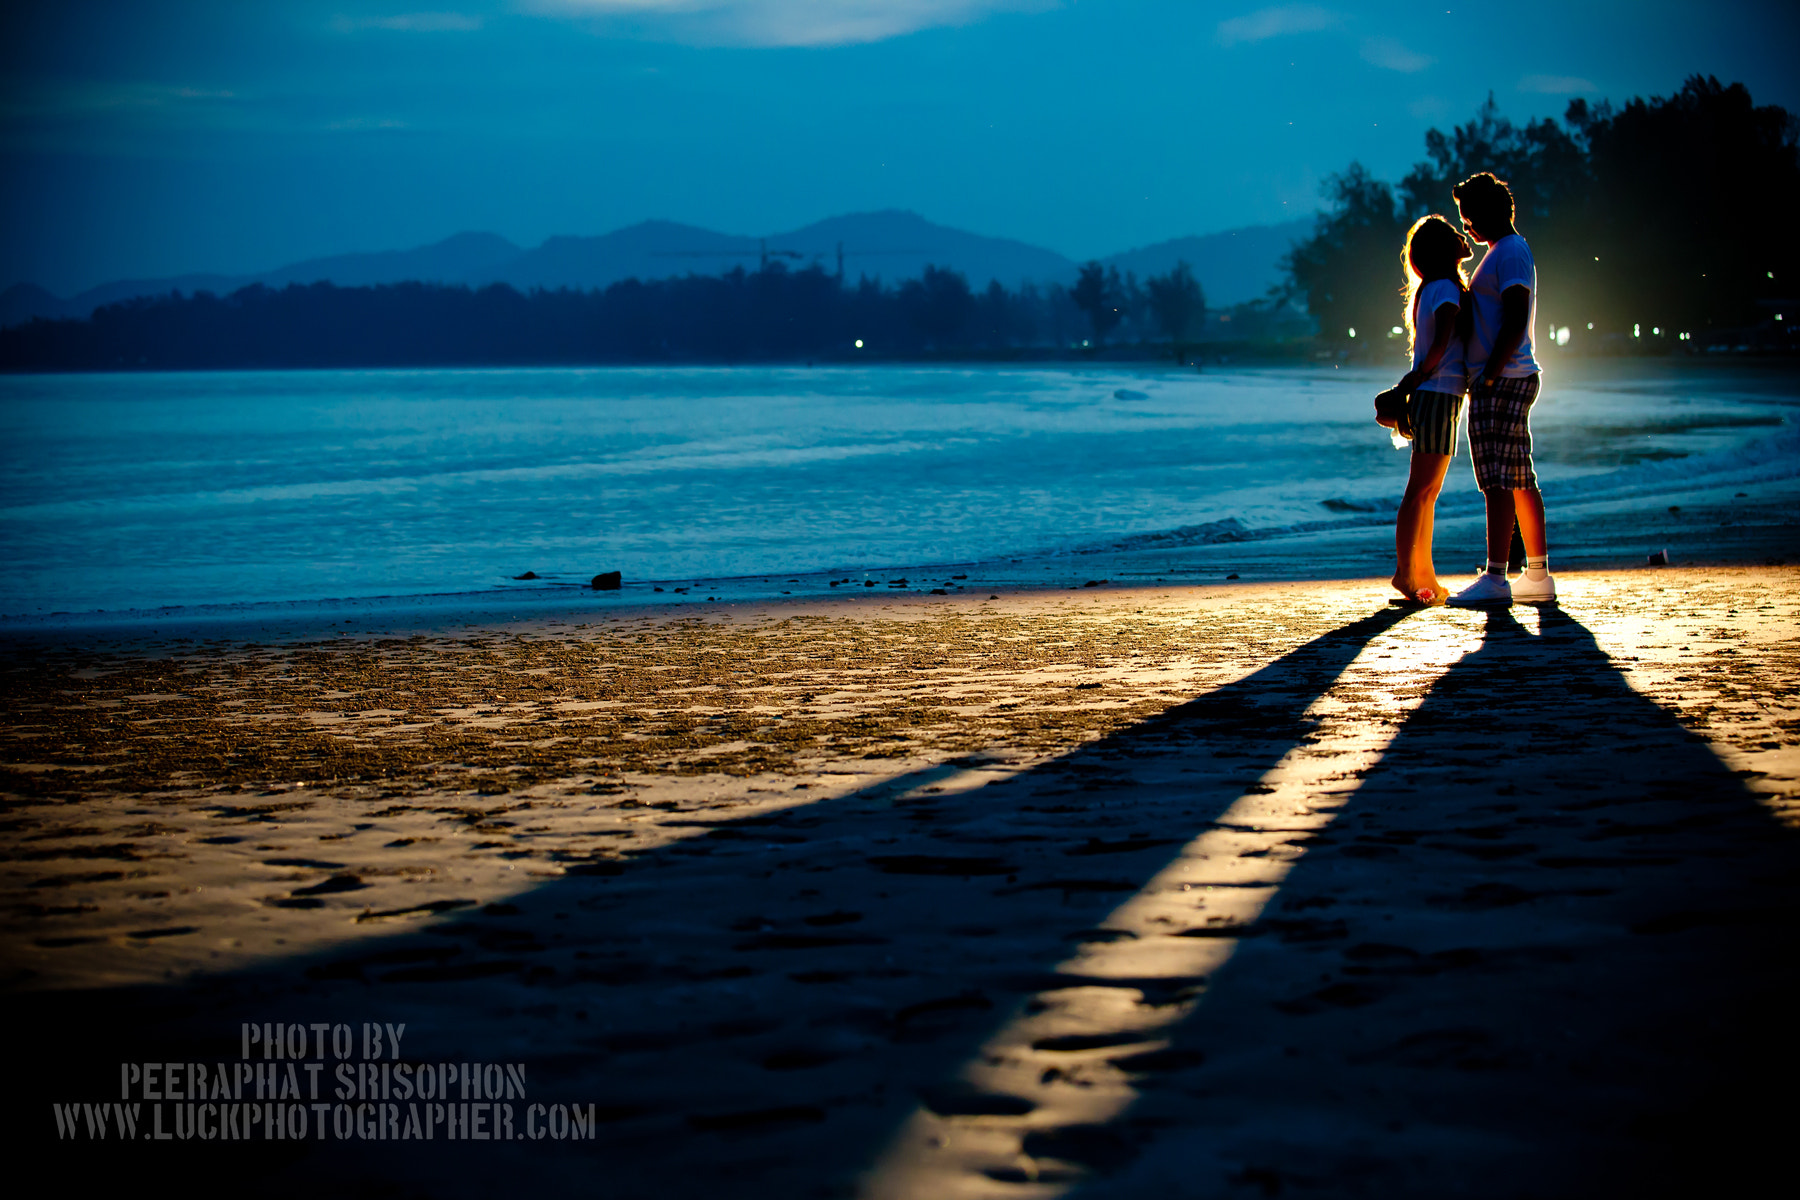 Photograph Light by Peeraphat Srisophon on 500px